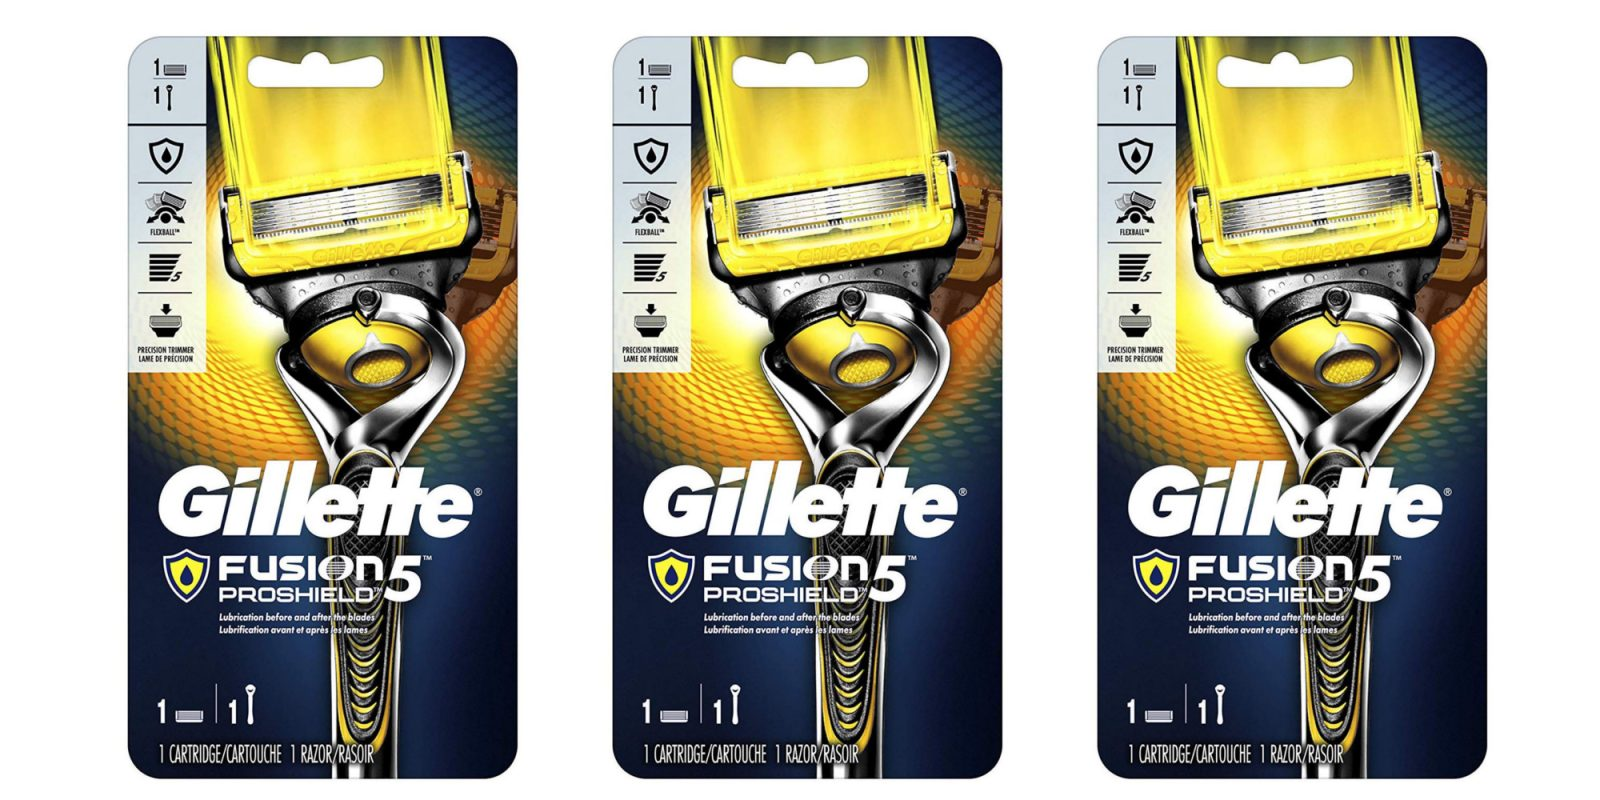 Gillette's Fusion5 Men's Razor is yours for $8 Prime shipped (Up to 35% off)